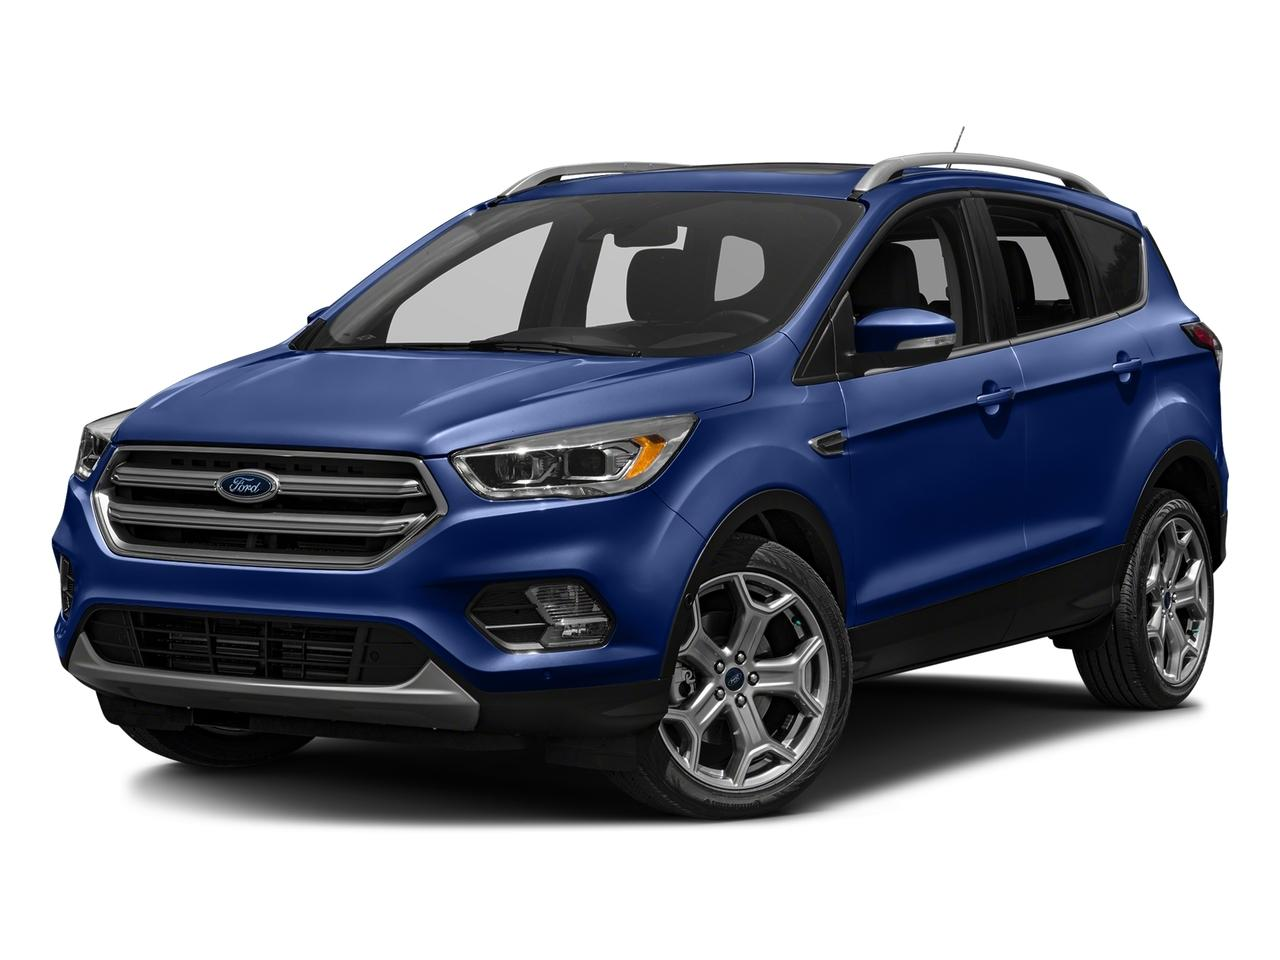 2017 Ford Escape Vehicle Photo in Houston, TX 77074